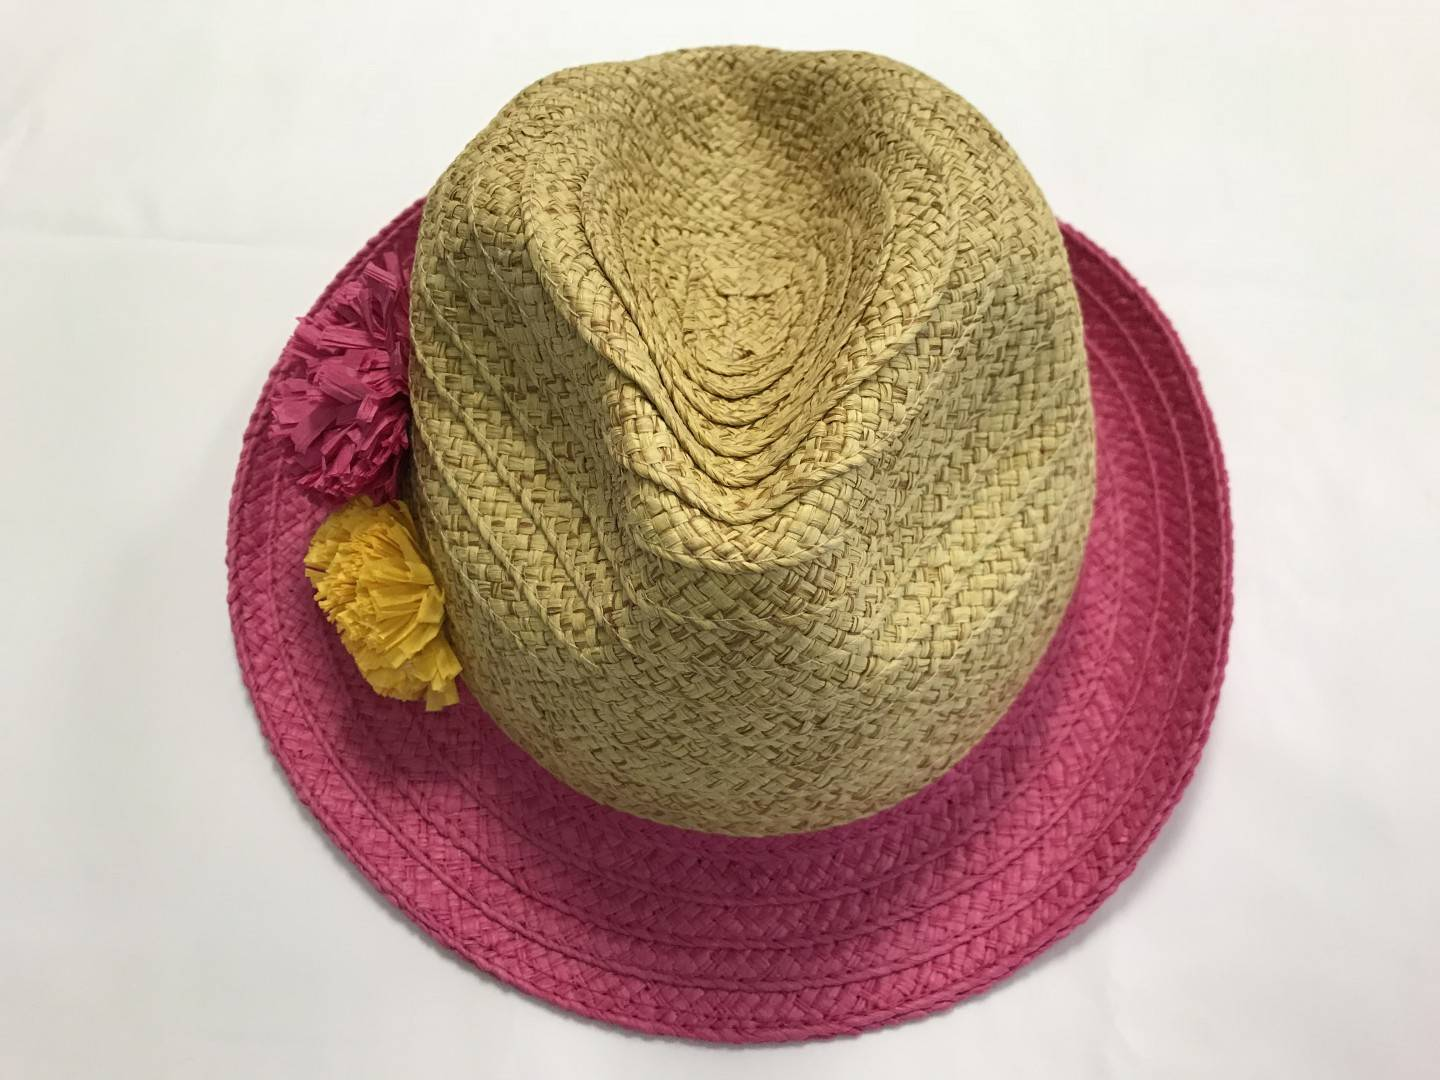 SUNNY DAYZ TAN AND PINK FEDORA SIZES 6-12